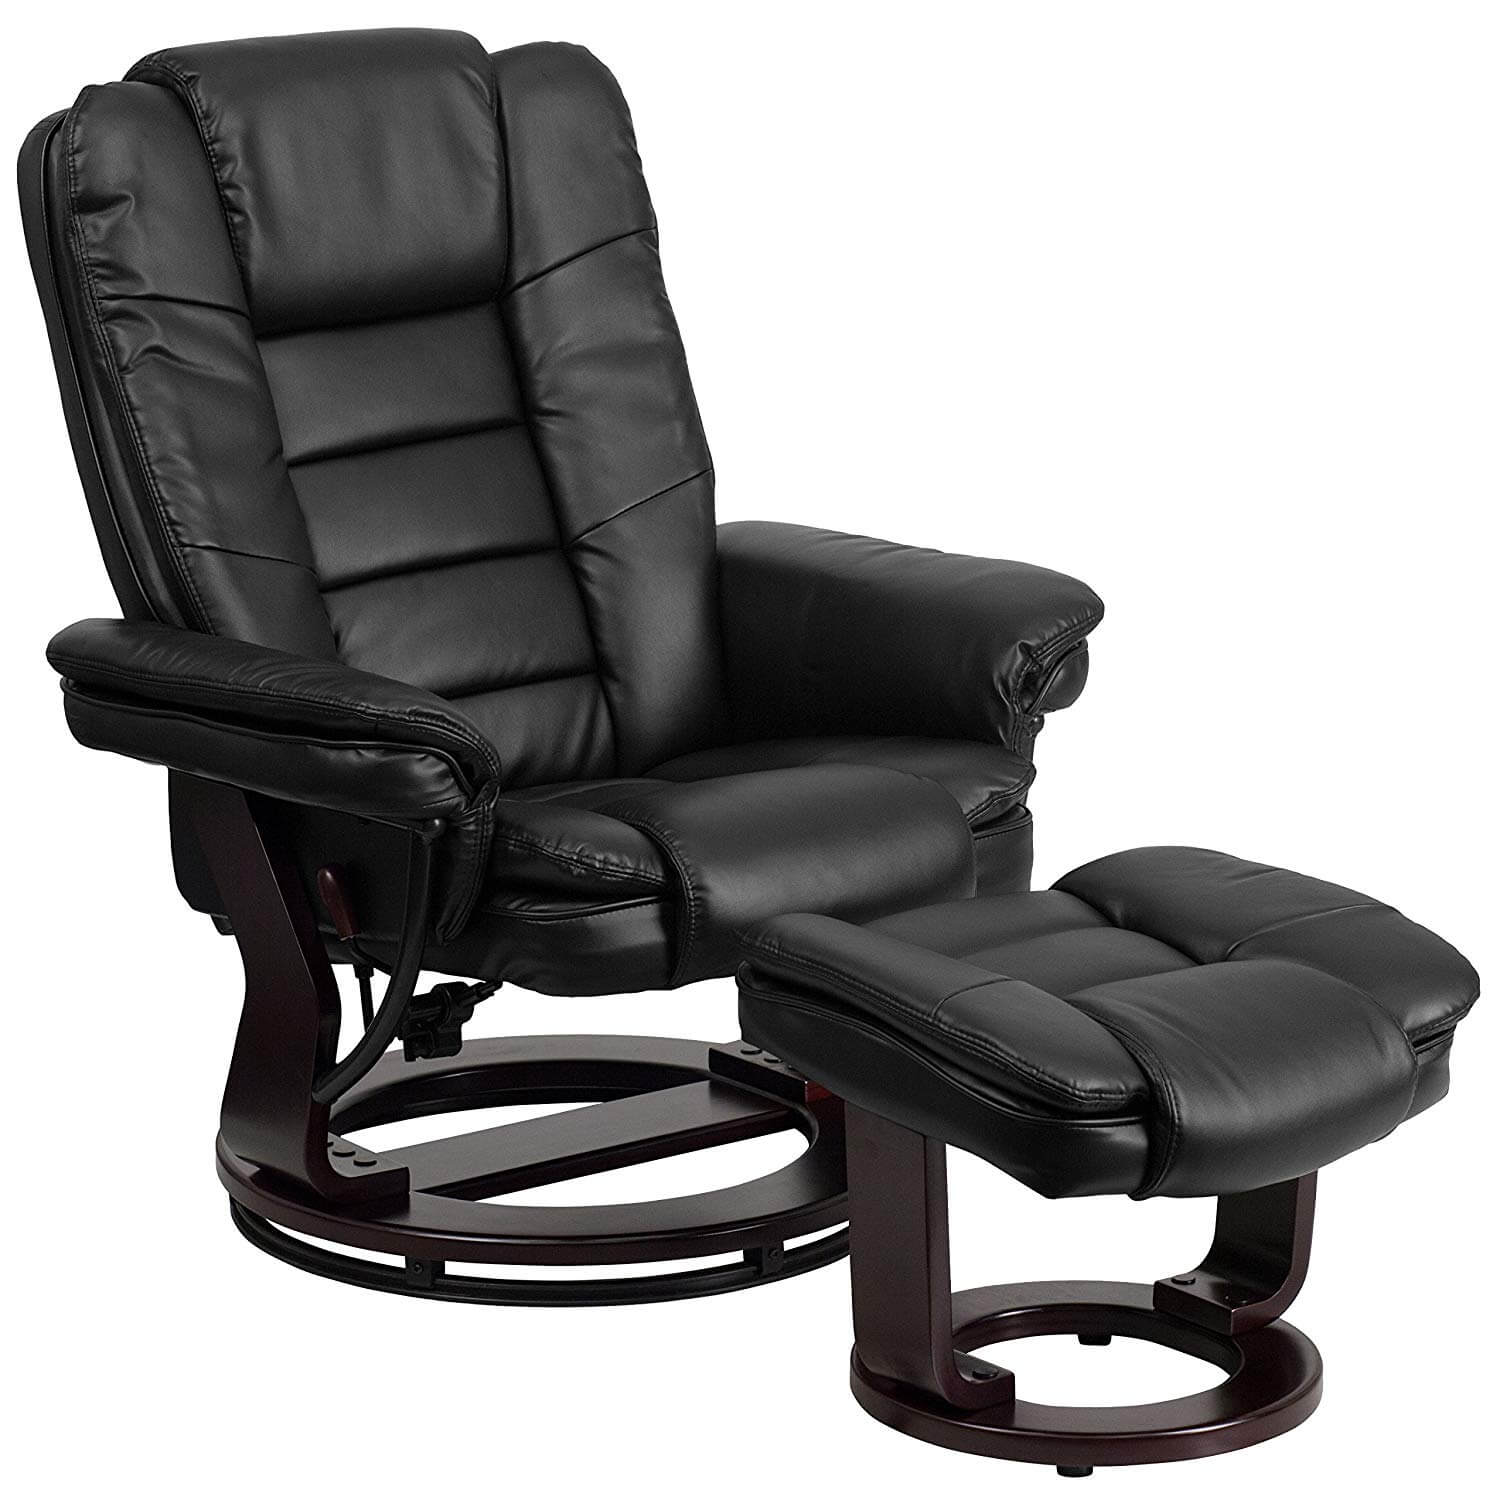 Best Small Recliners for Petite & Short People 2020